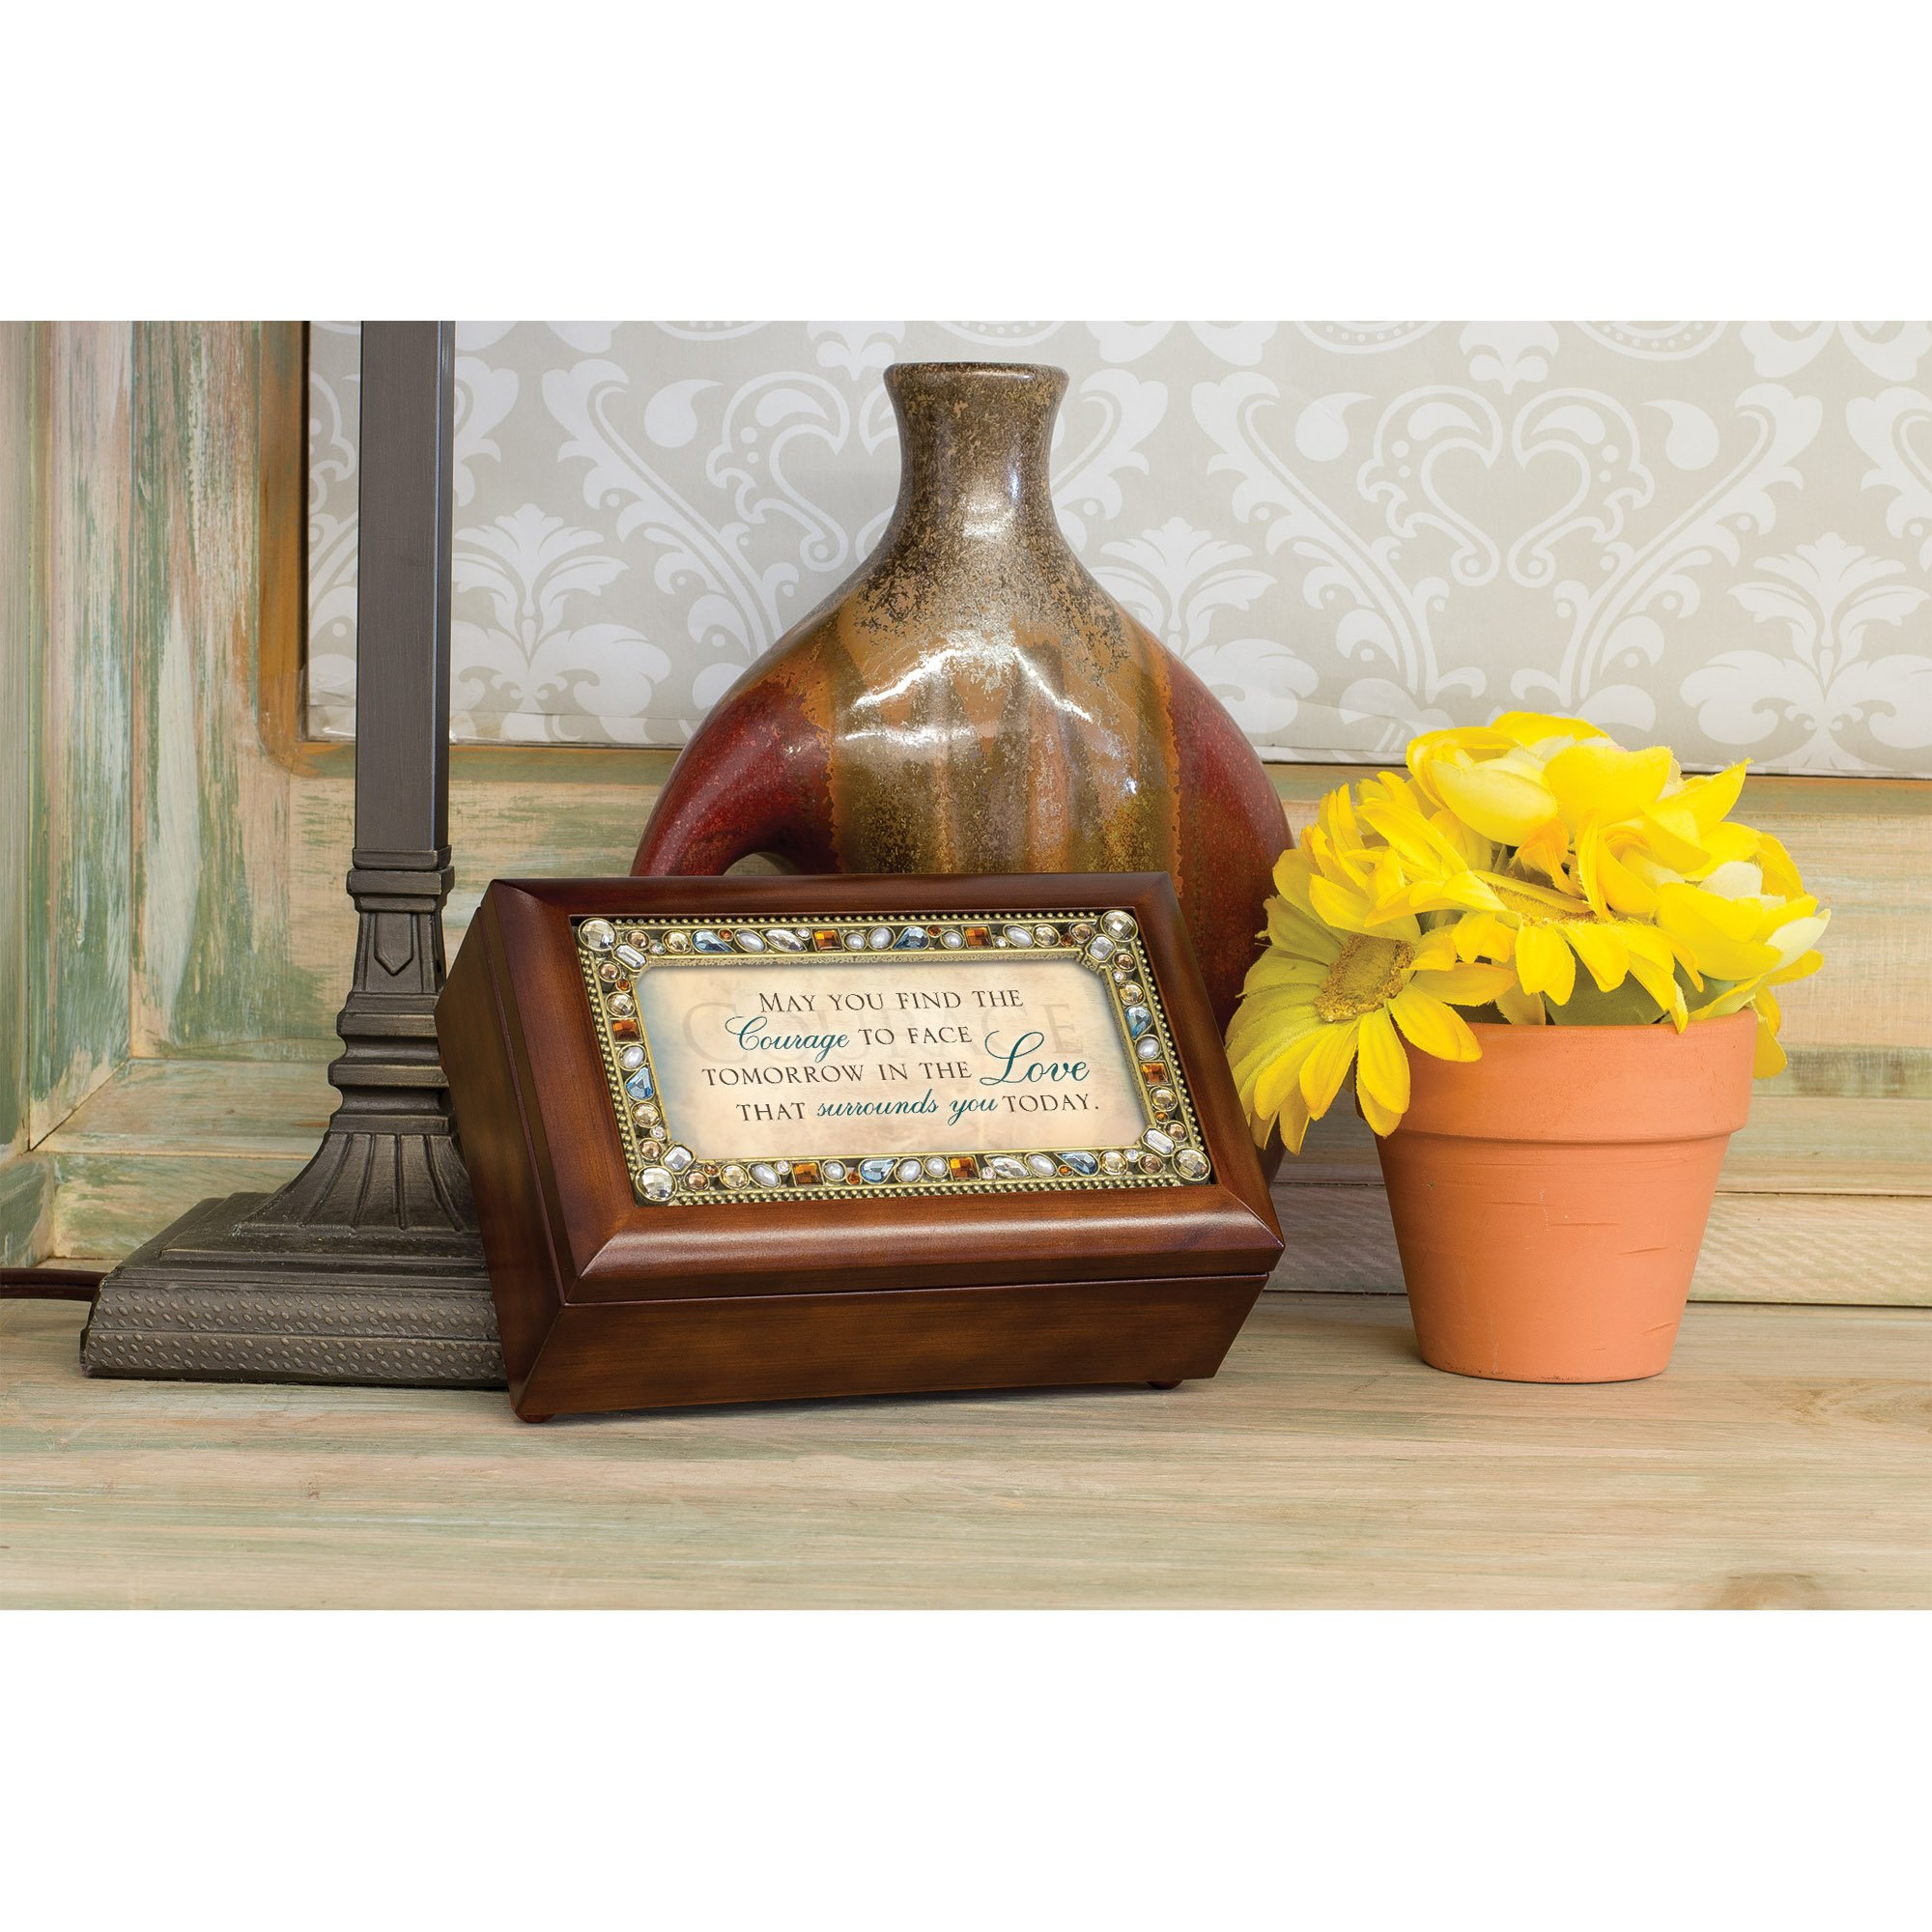 May You Find The Courage Jeweled Woodgrain Jewelry Music Box - Plays Tune Wind Beneath My Wings by Cottage Garden (Image #5)